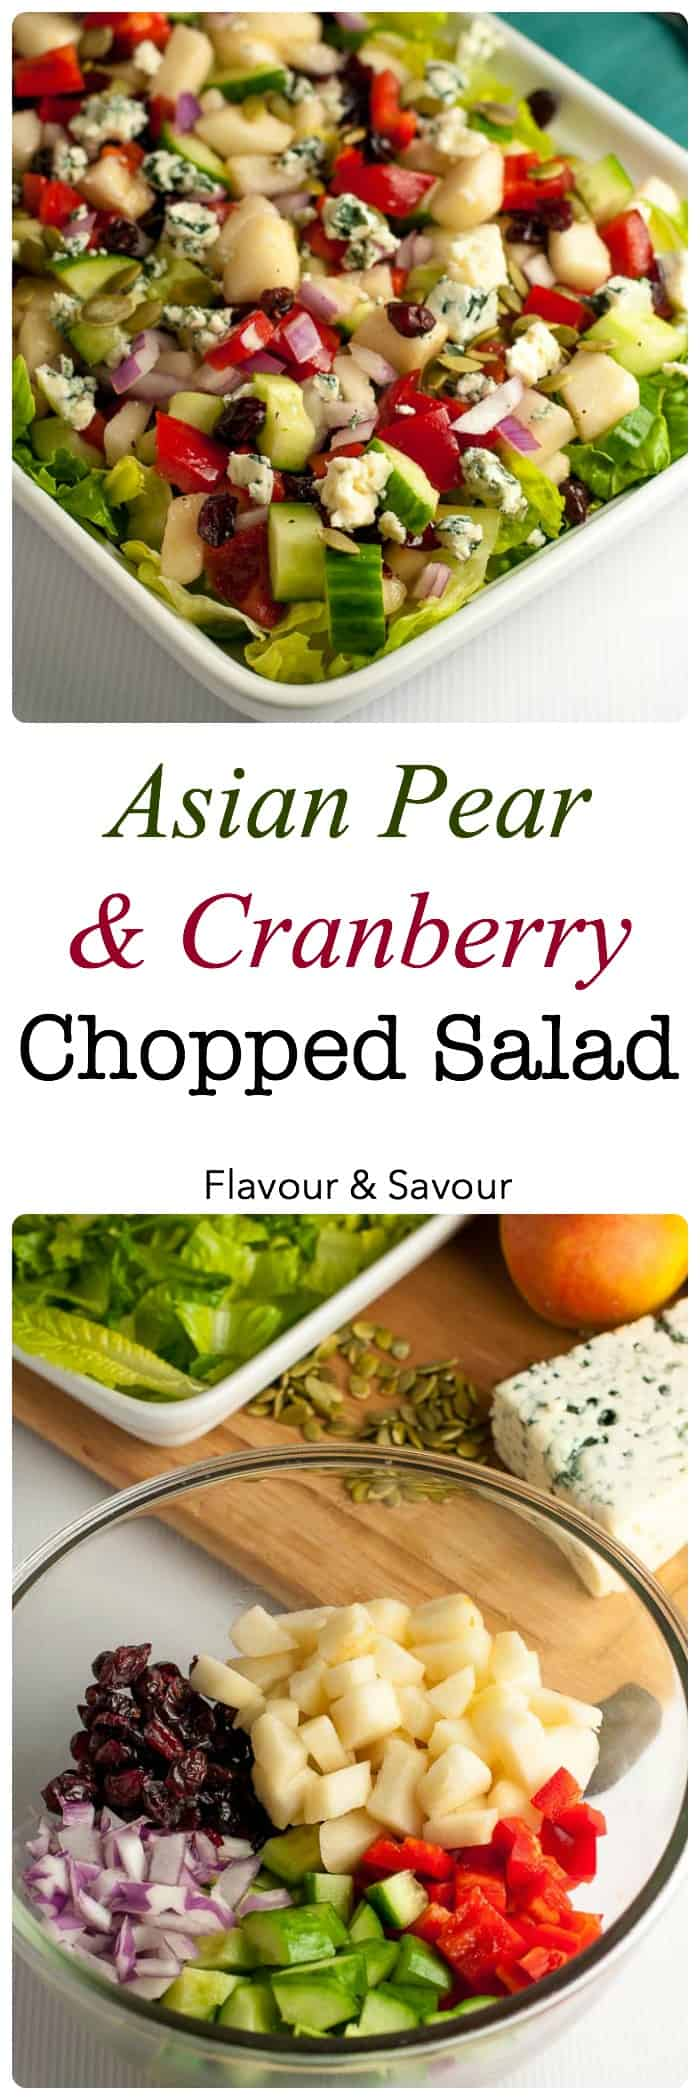 Asian Pear And Cranberry Chopped Salad Flavour And Savour